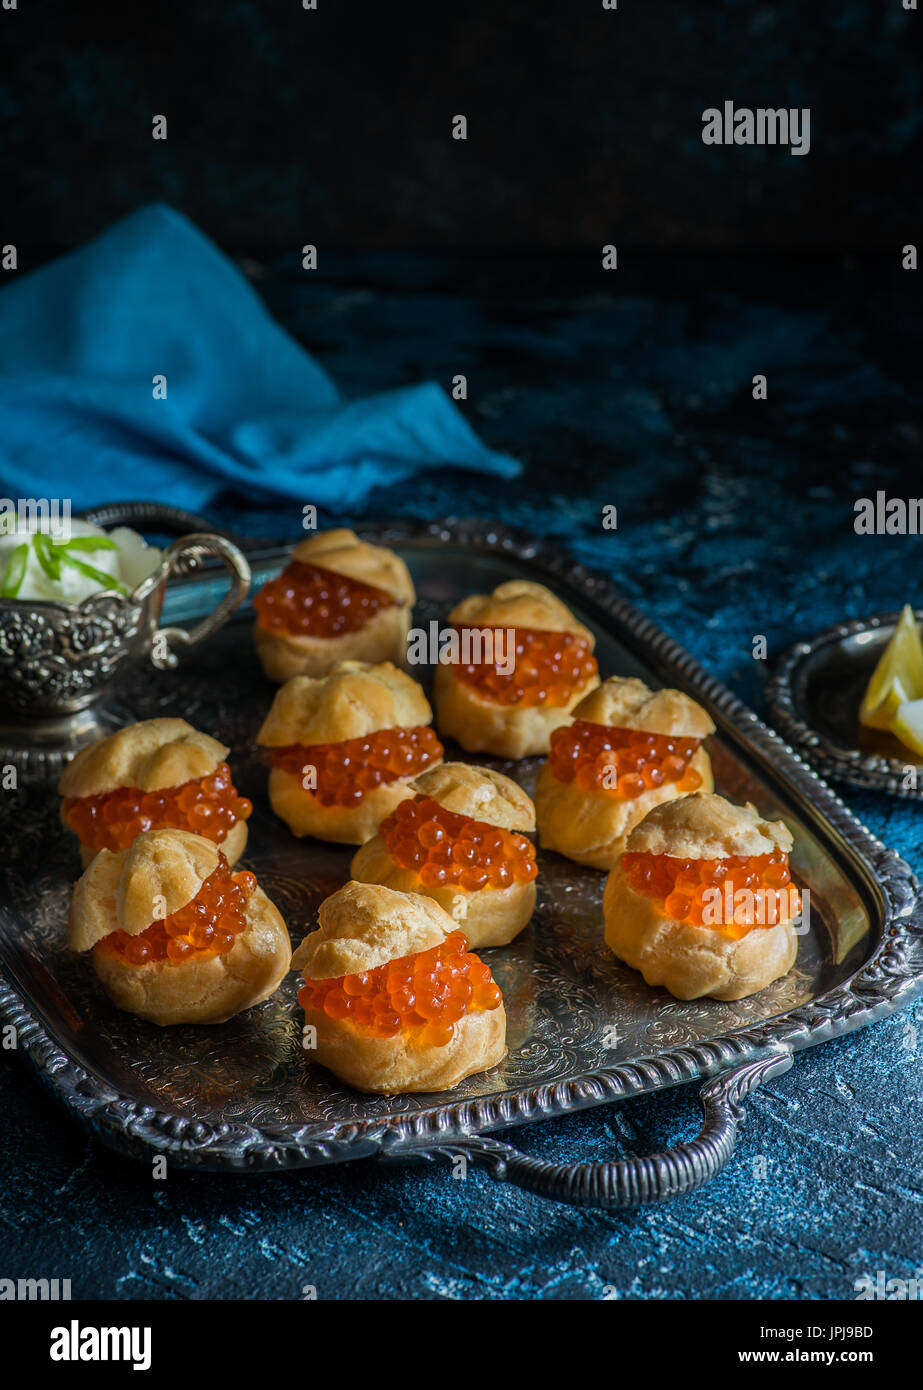 Homemade profiteroles stuffed with red caviar with sour cream on vintage tray over dark blue wooden background. Dark rustic style, natural light - Stock Image